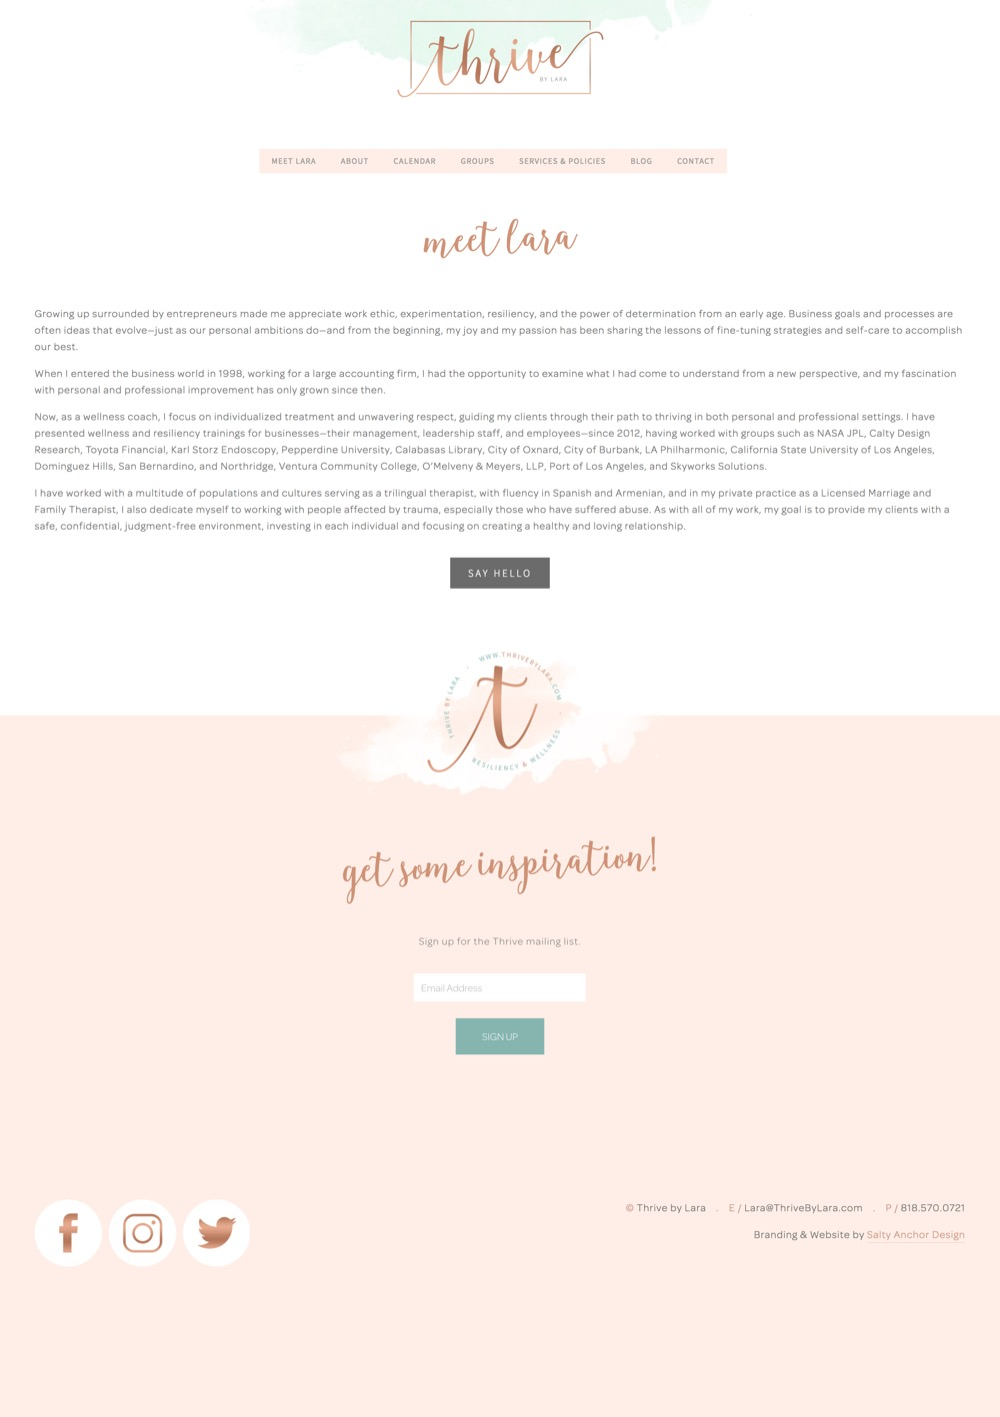 Squarespace Website Design Secondary Content Page